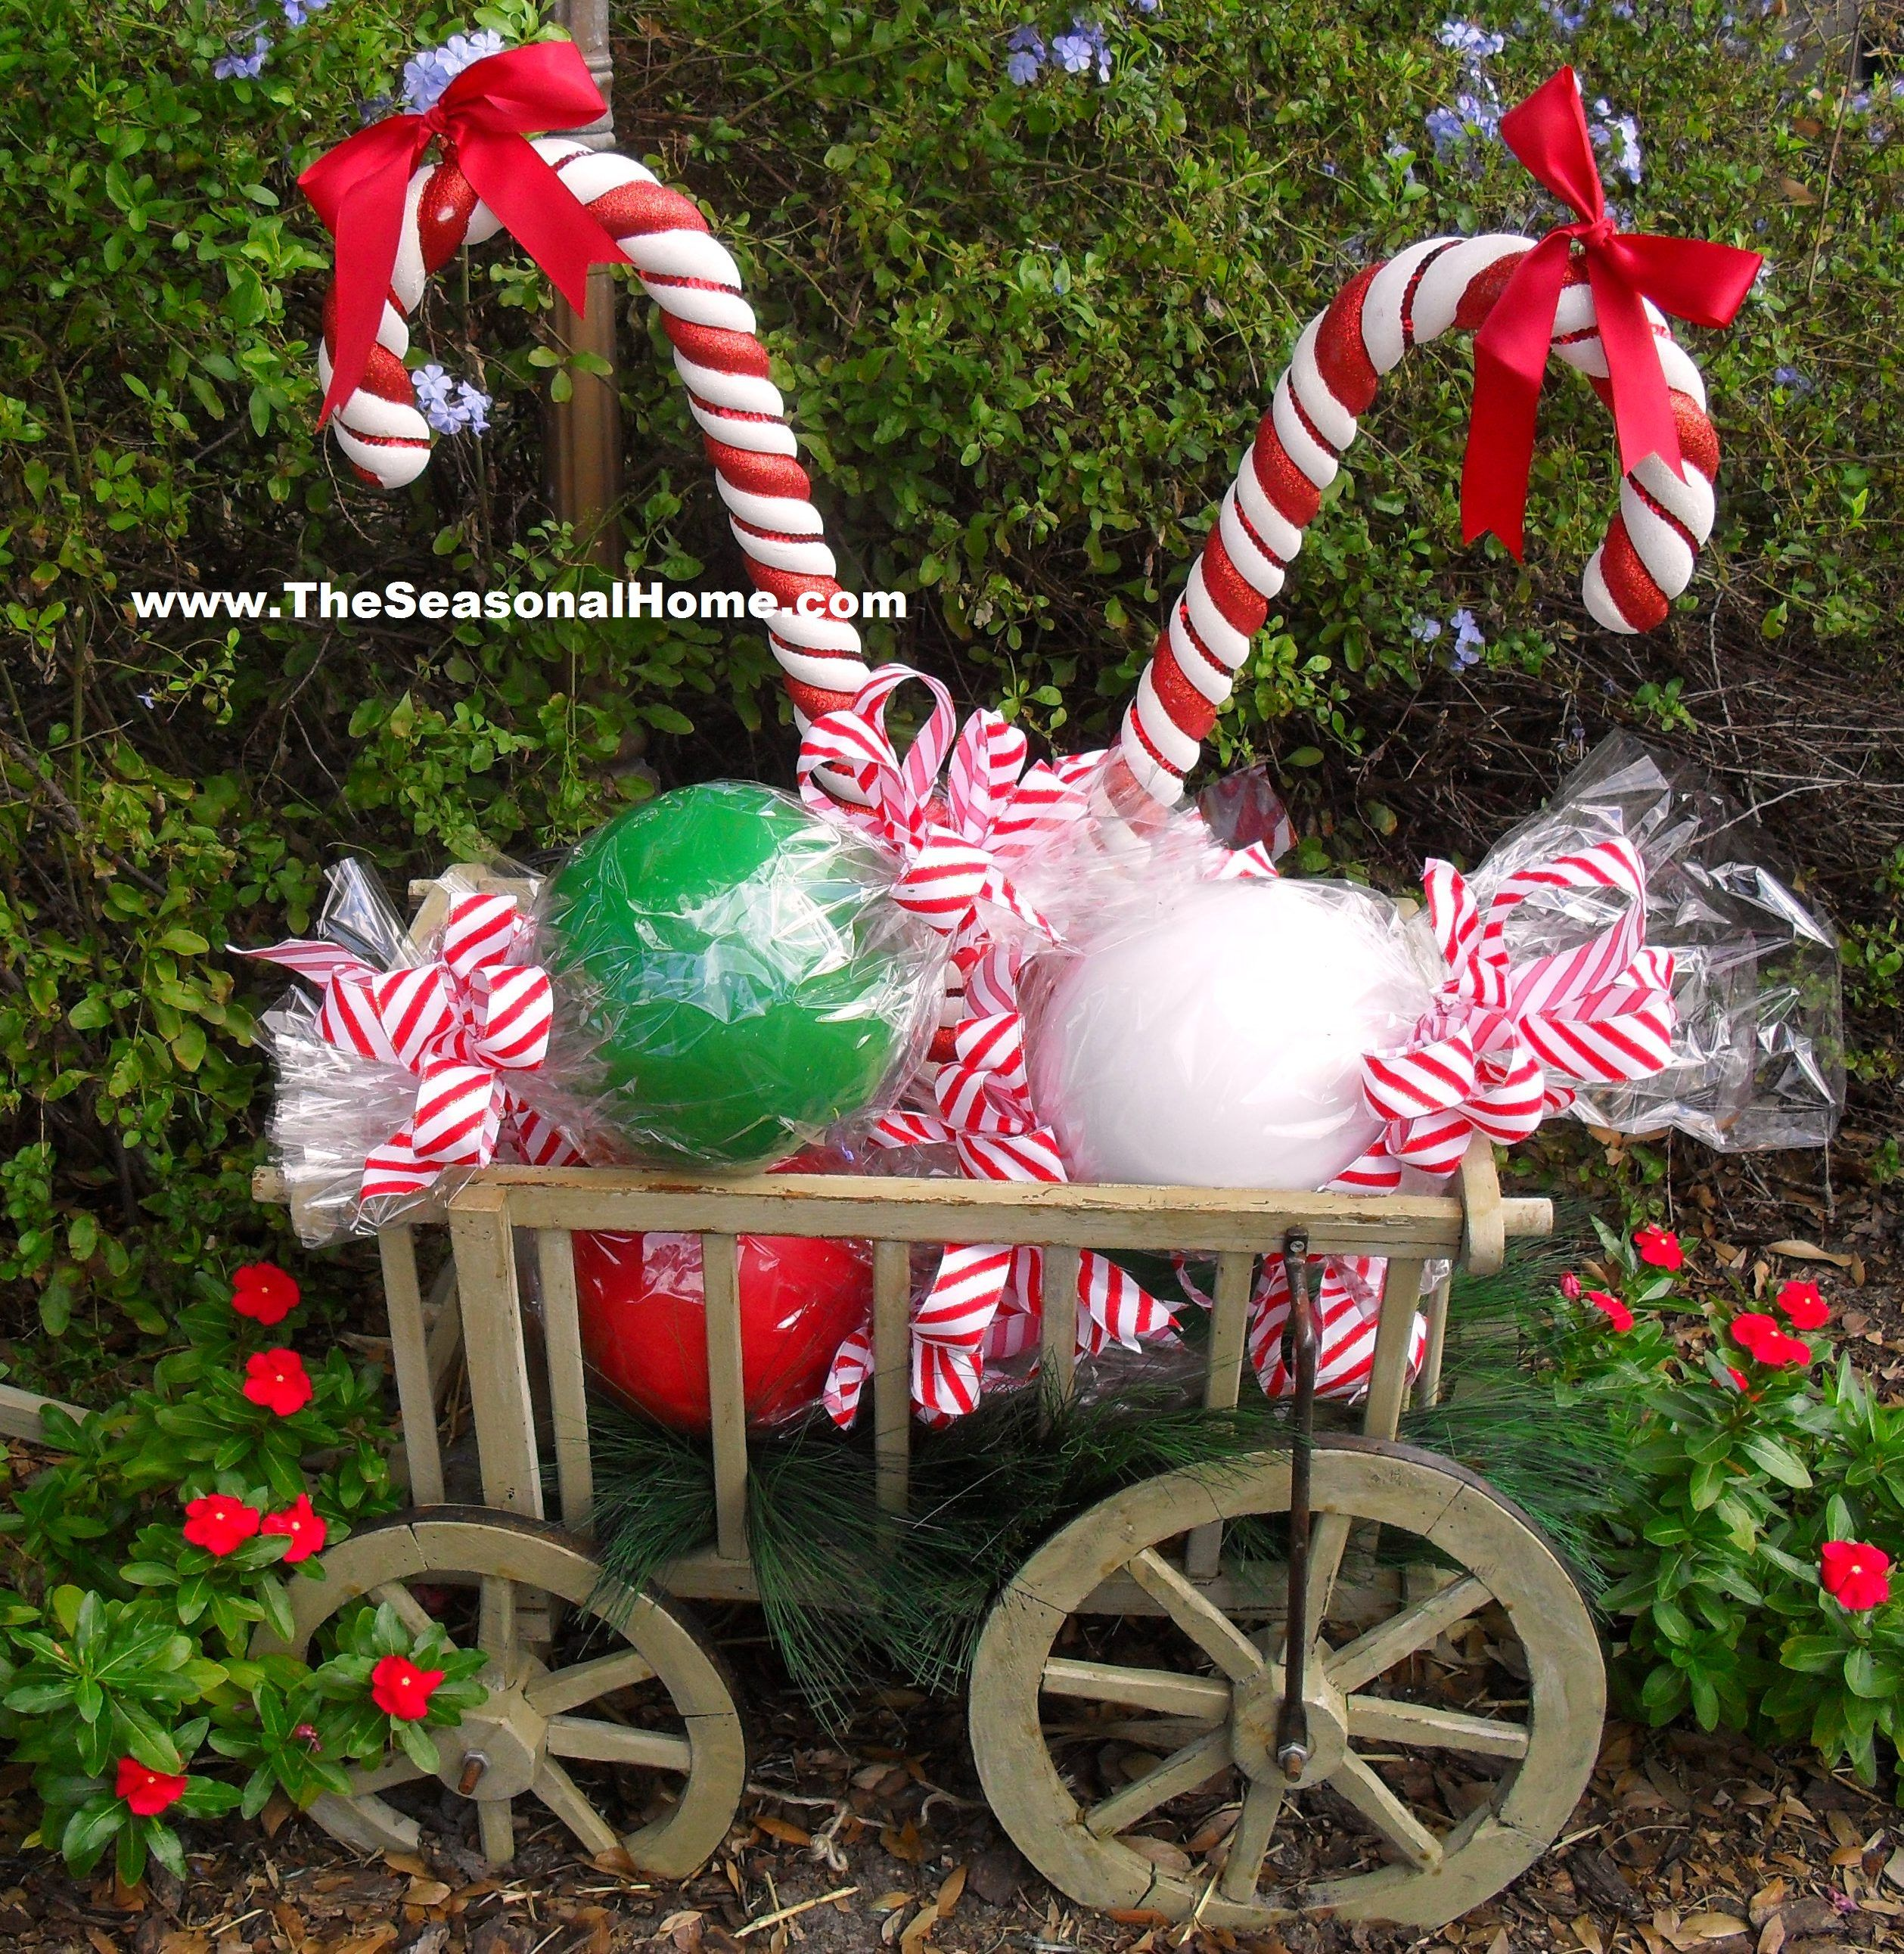 How to diy outdoor candy on the seasonal home blog Outside xmas decorations ideas